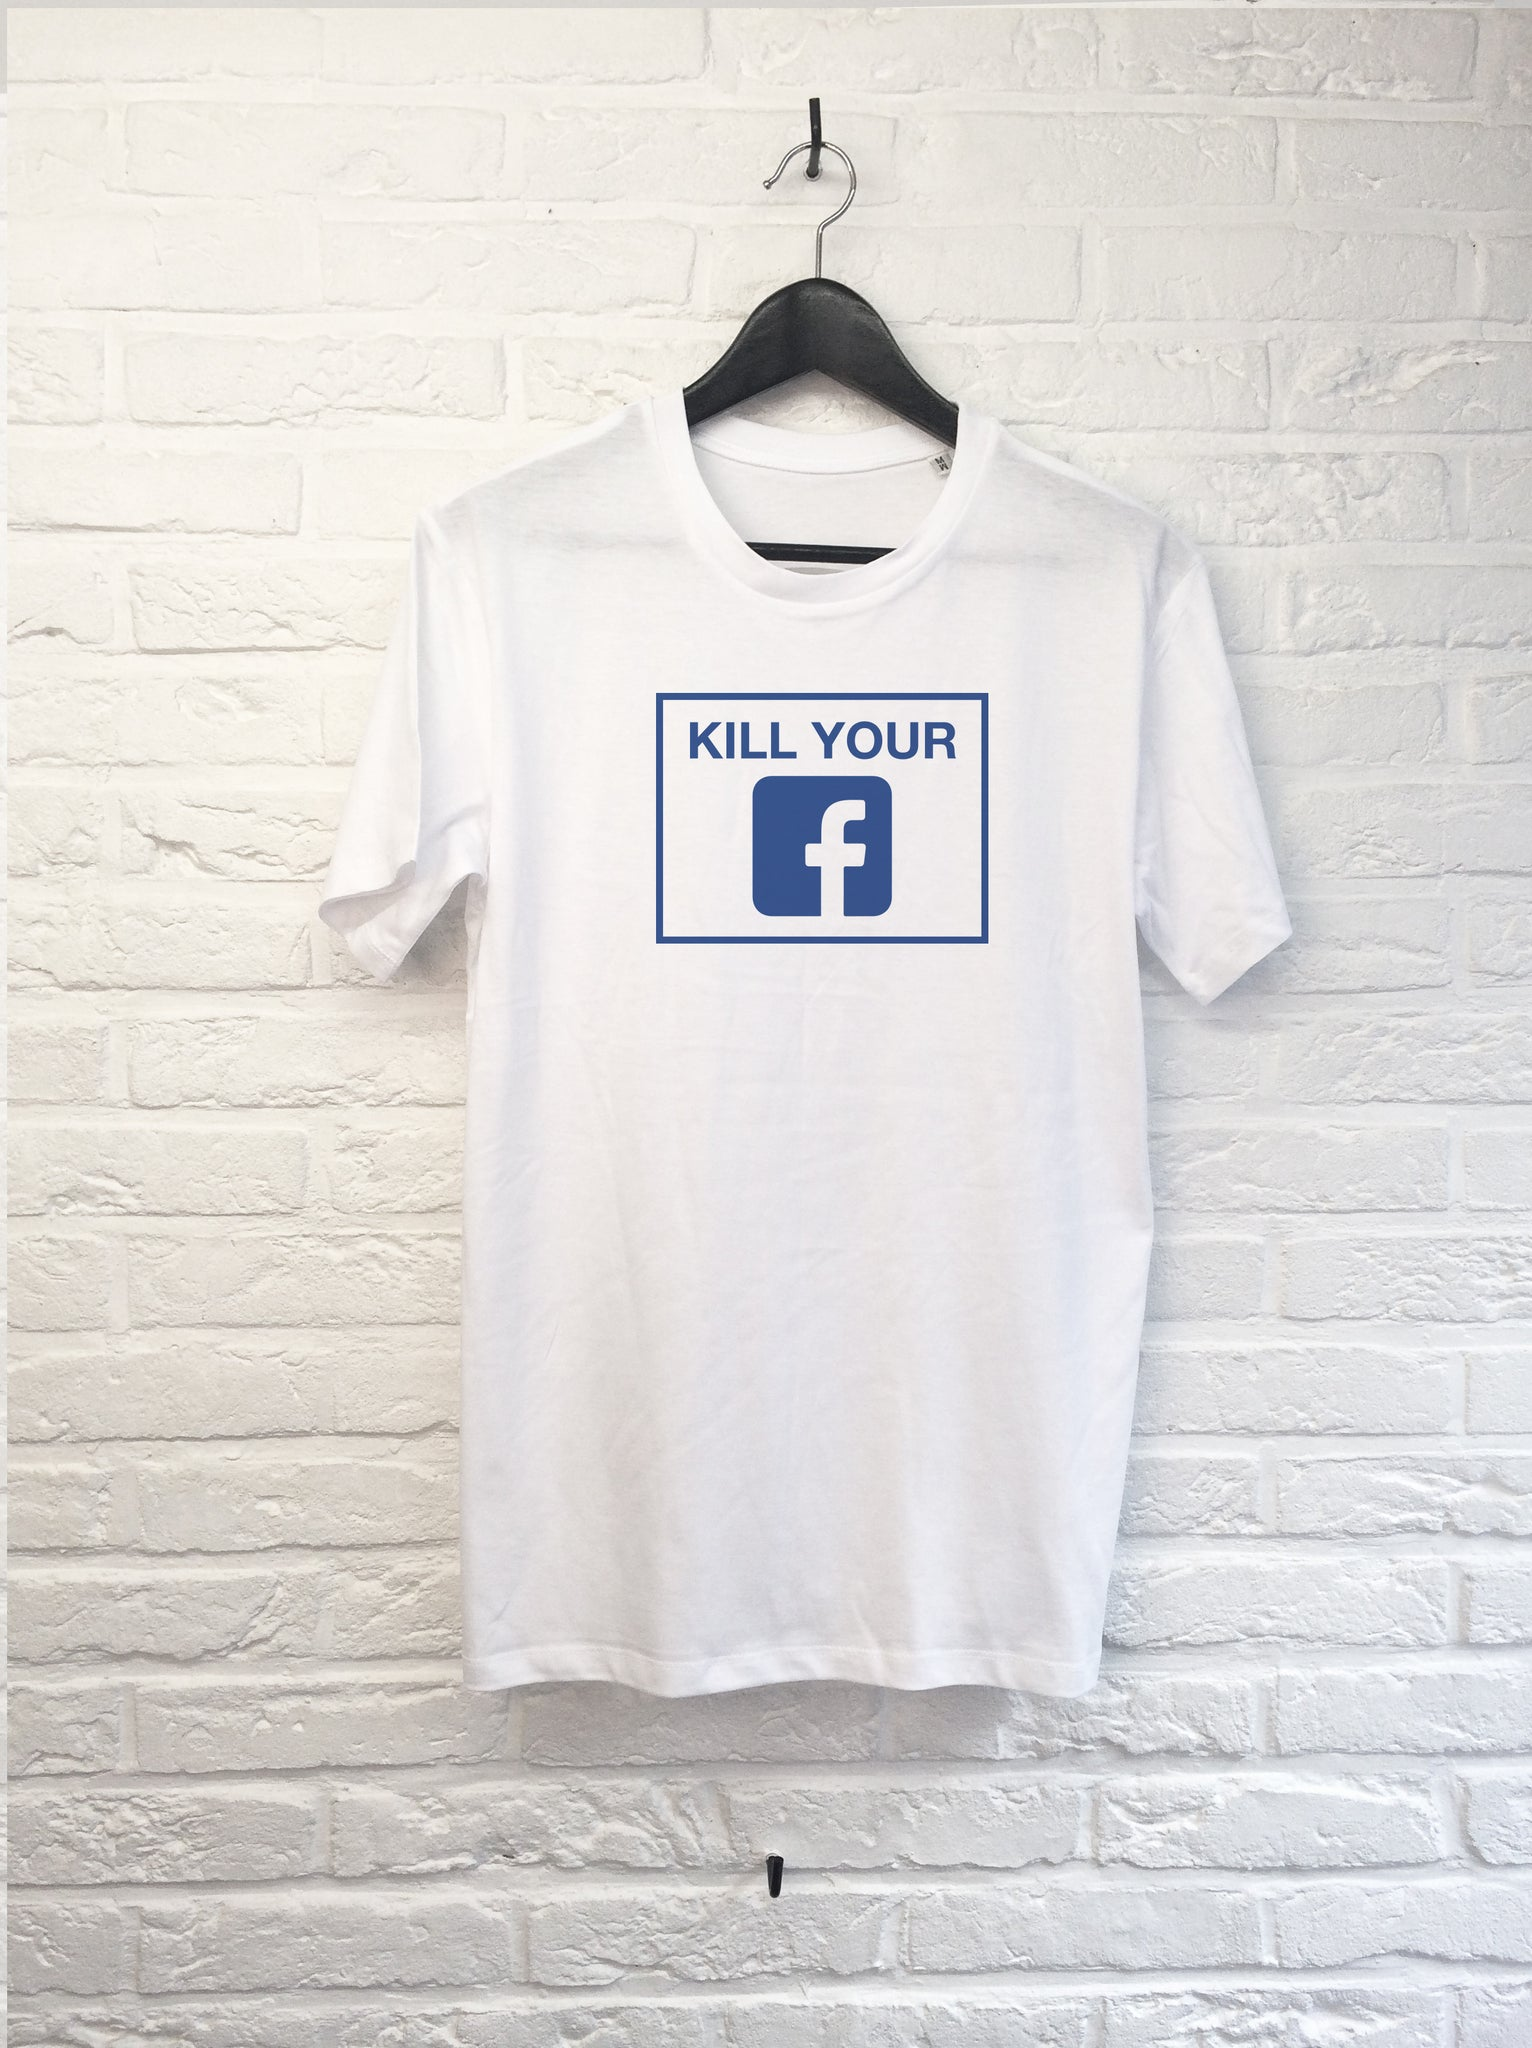 Kill your facebook-T shirt-Atelier Amelot